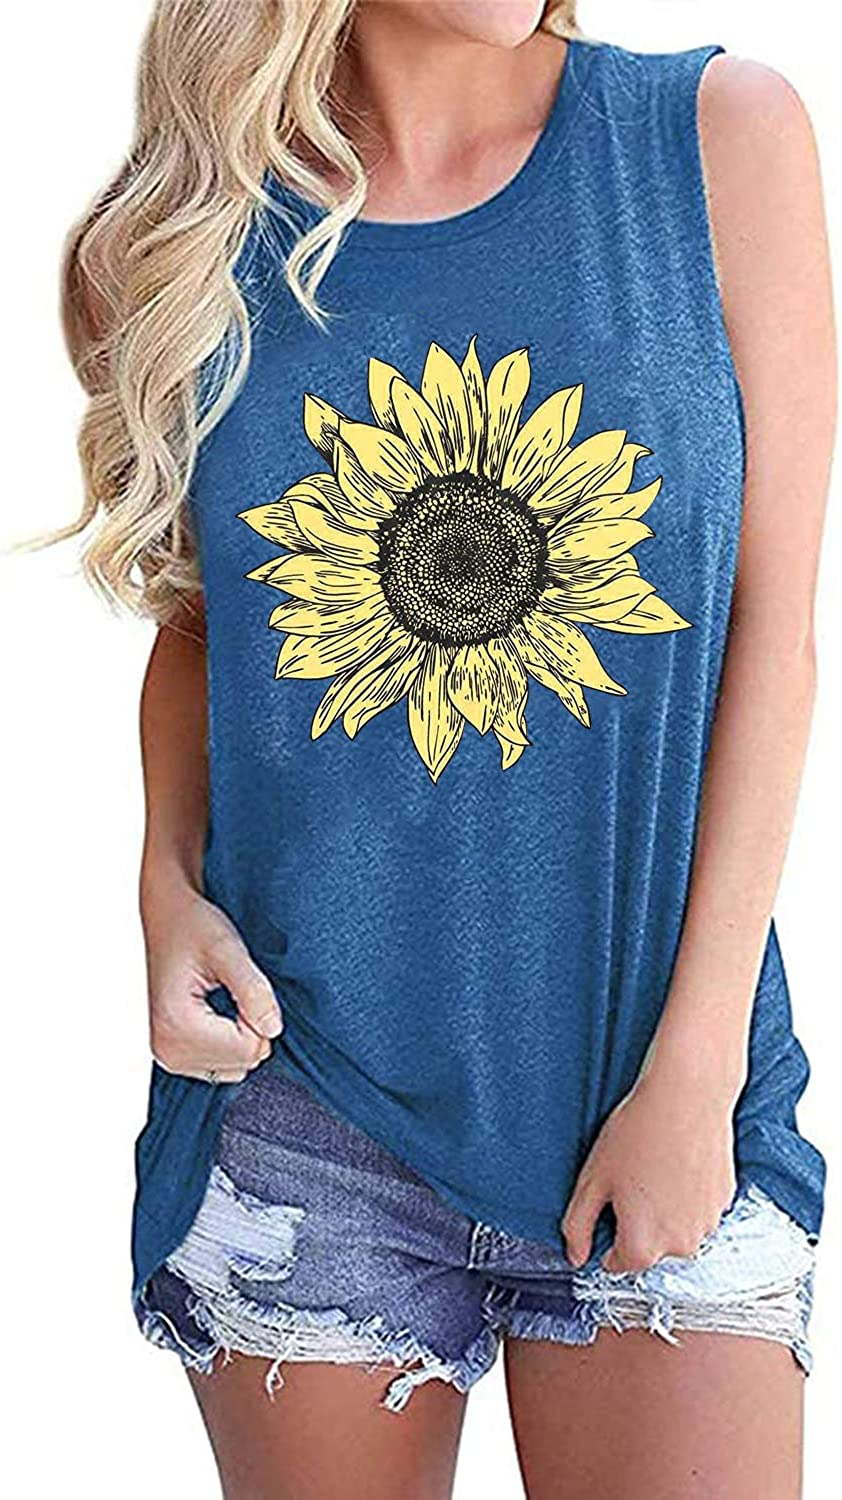 Sunflower Graphic Tank Tops Women Summer Sleeveless Cute Graphic Vest Tops Casual Floral Cami Shirts